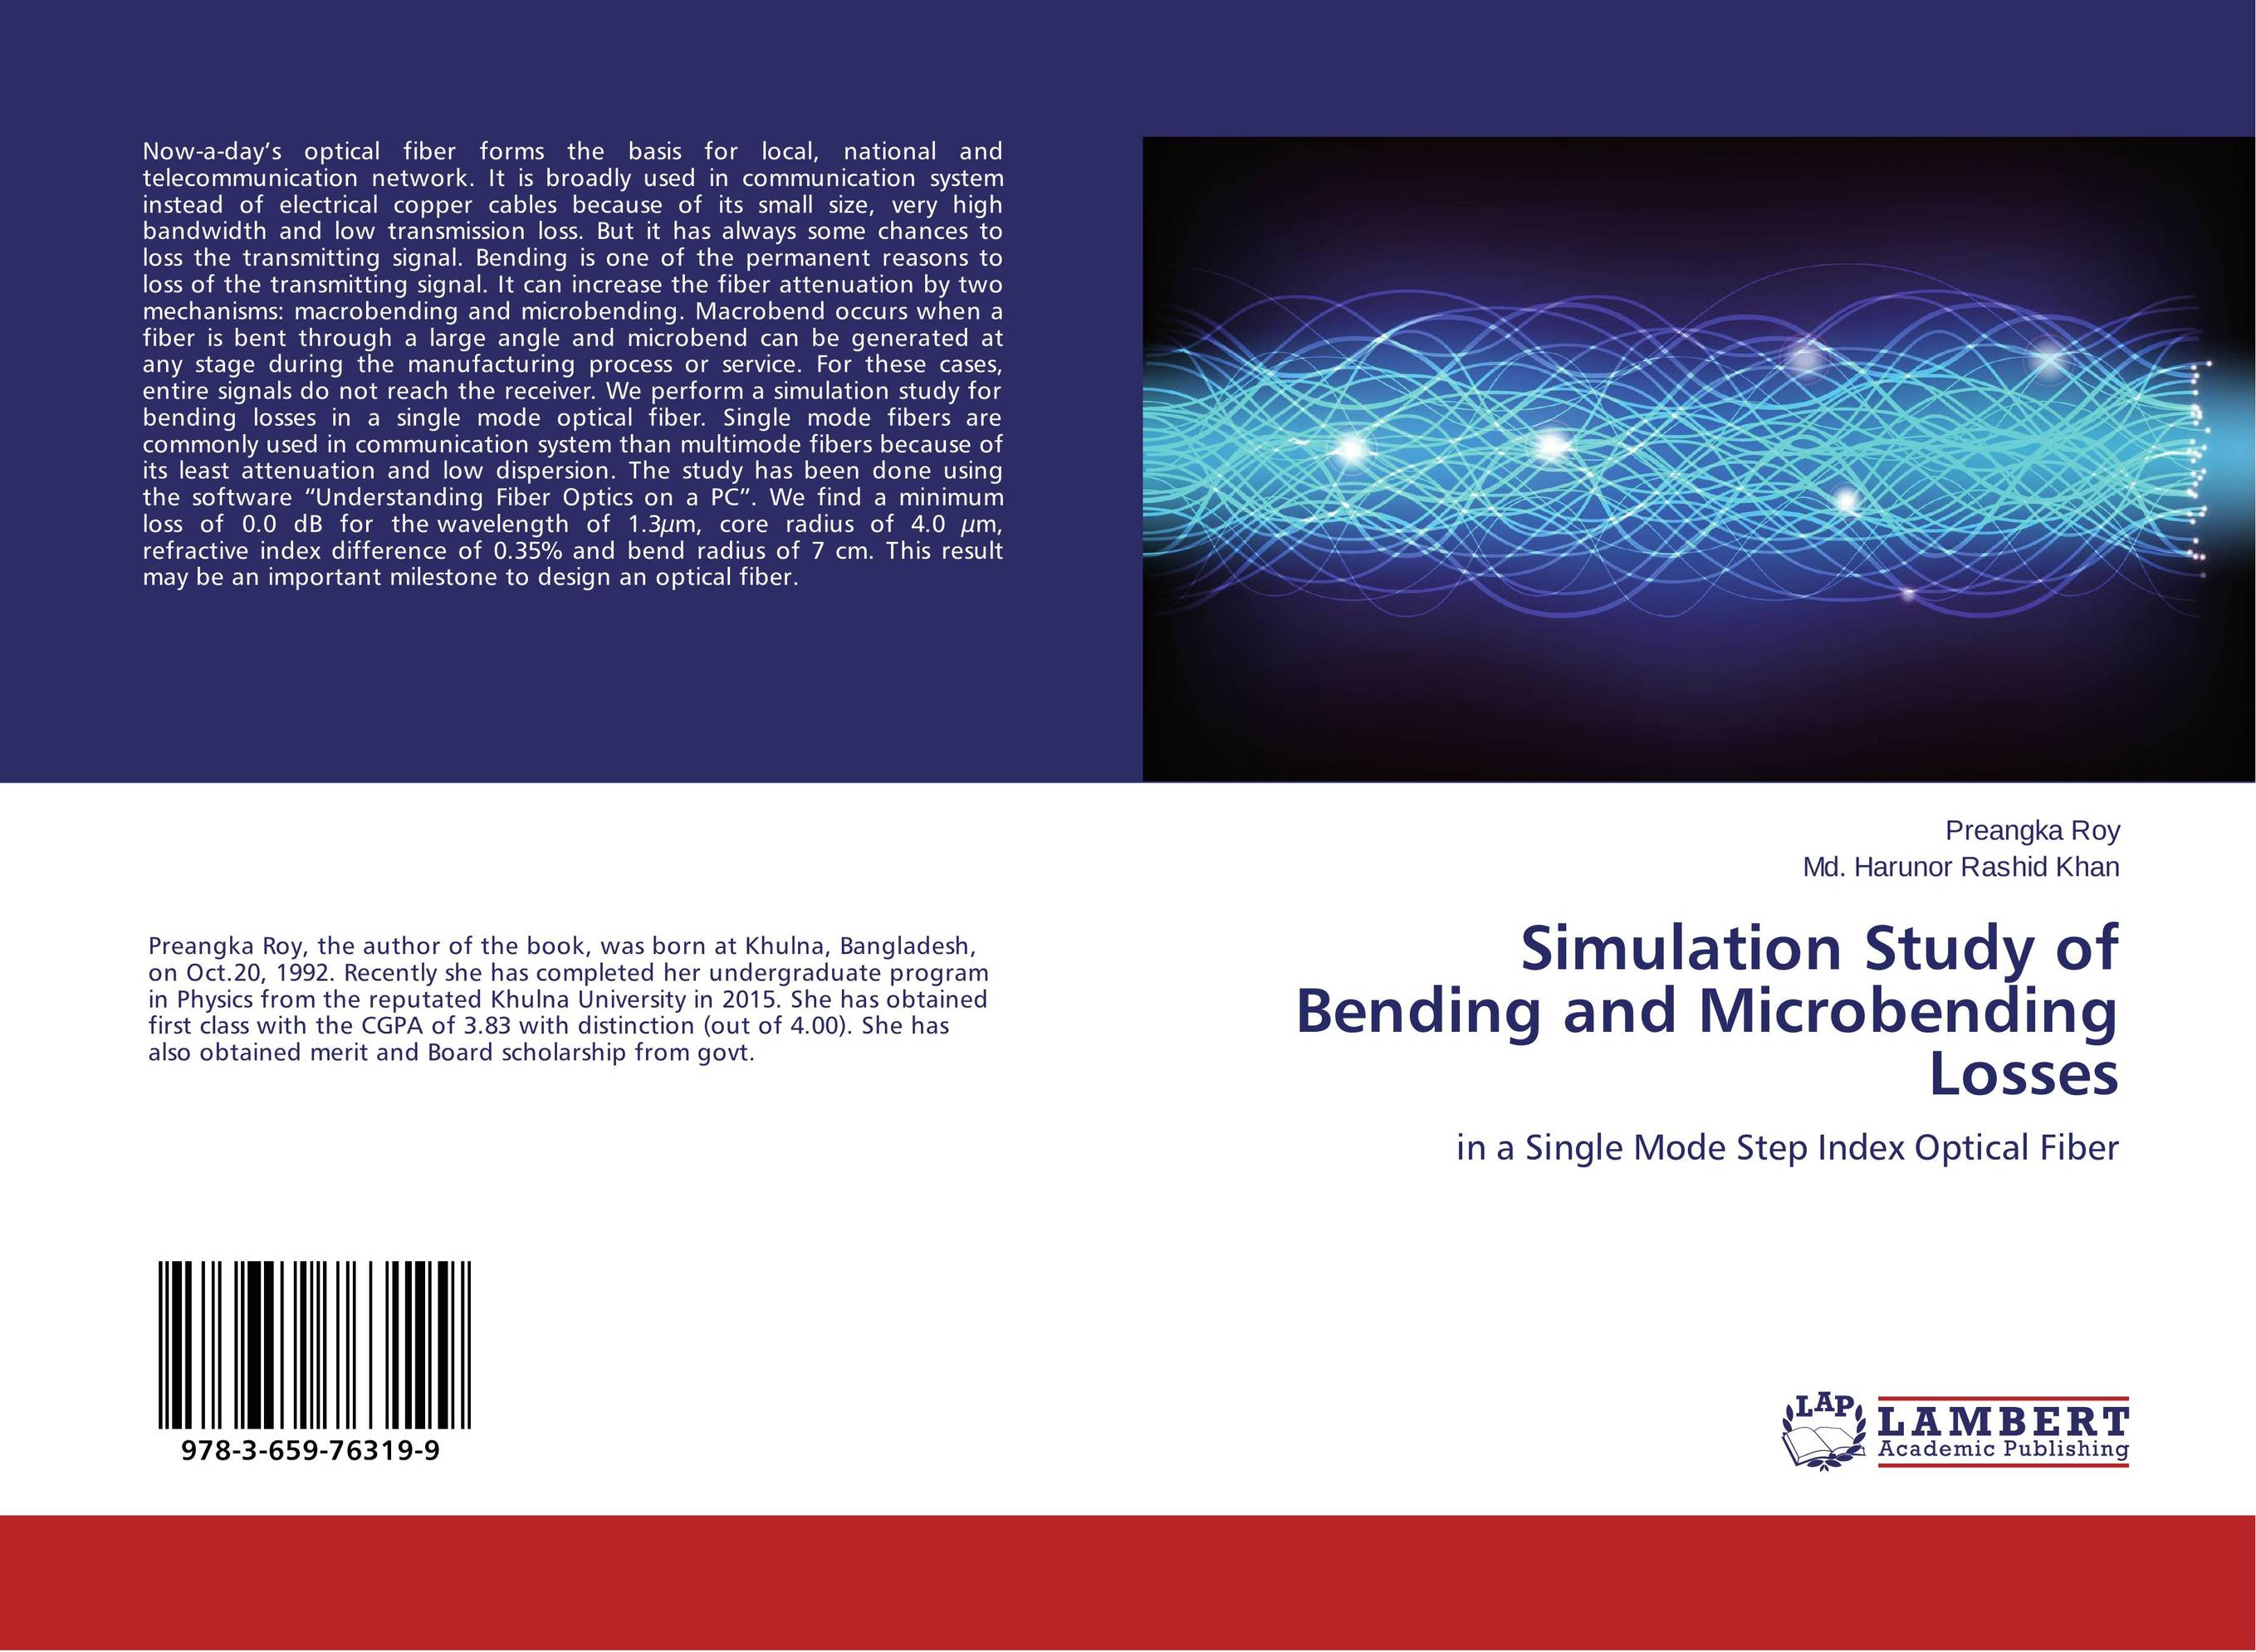 Simulation Study of Bending and Microbending Losses the can bus transceiver can converter canbus fiber optical fiber can sc dual fiber transceiver